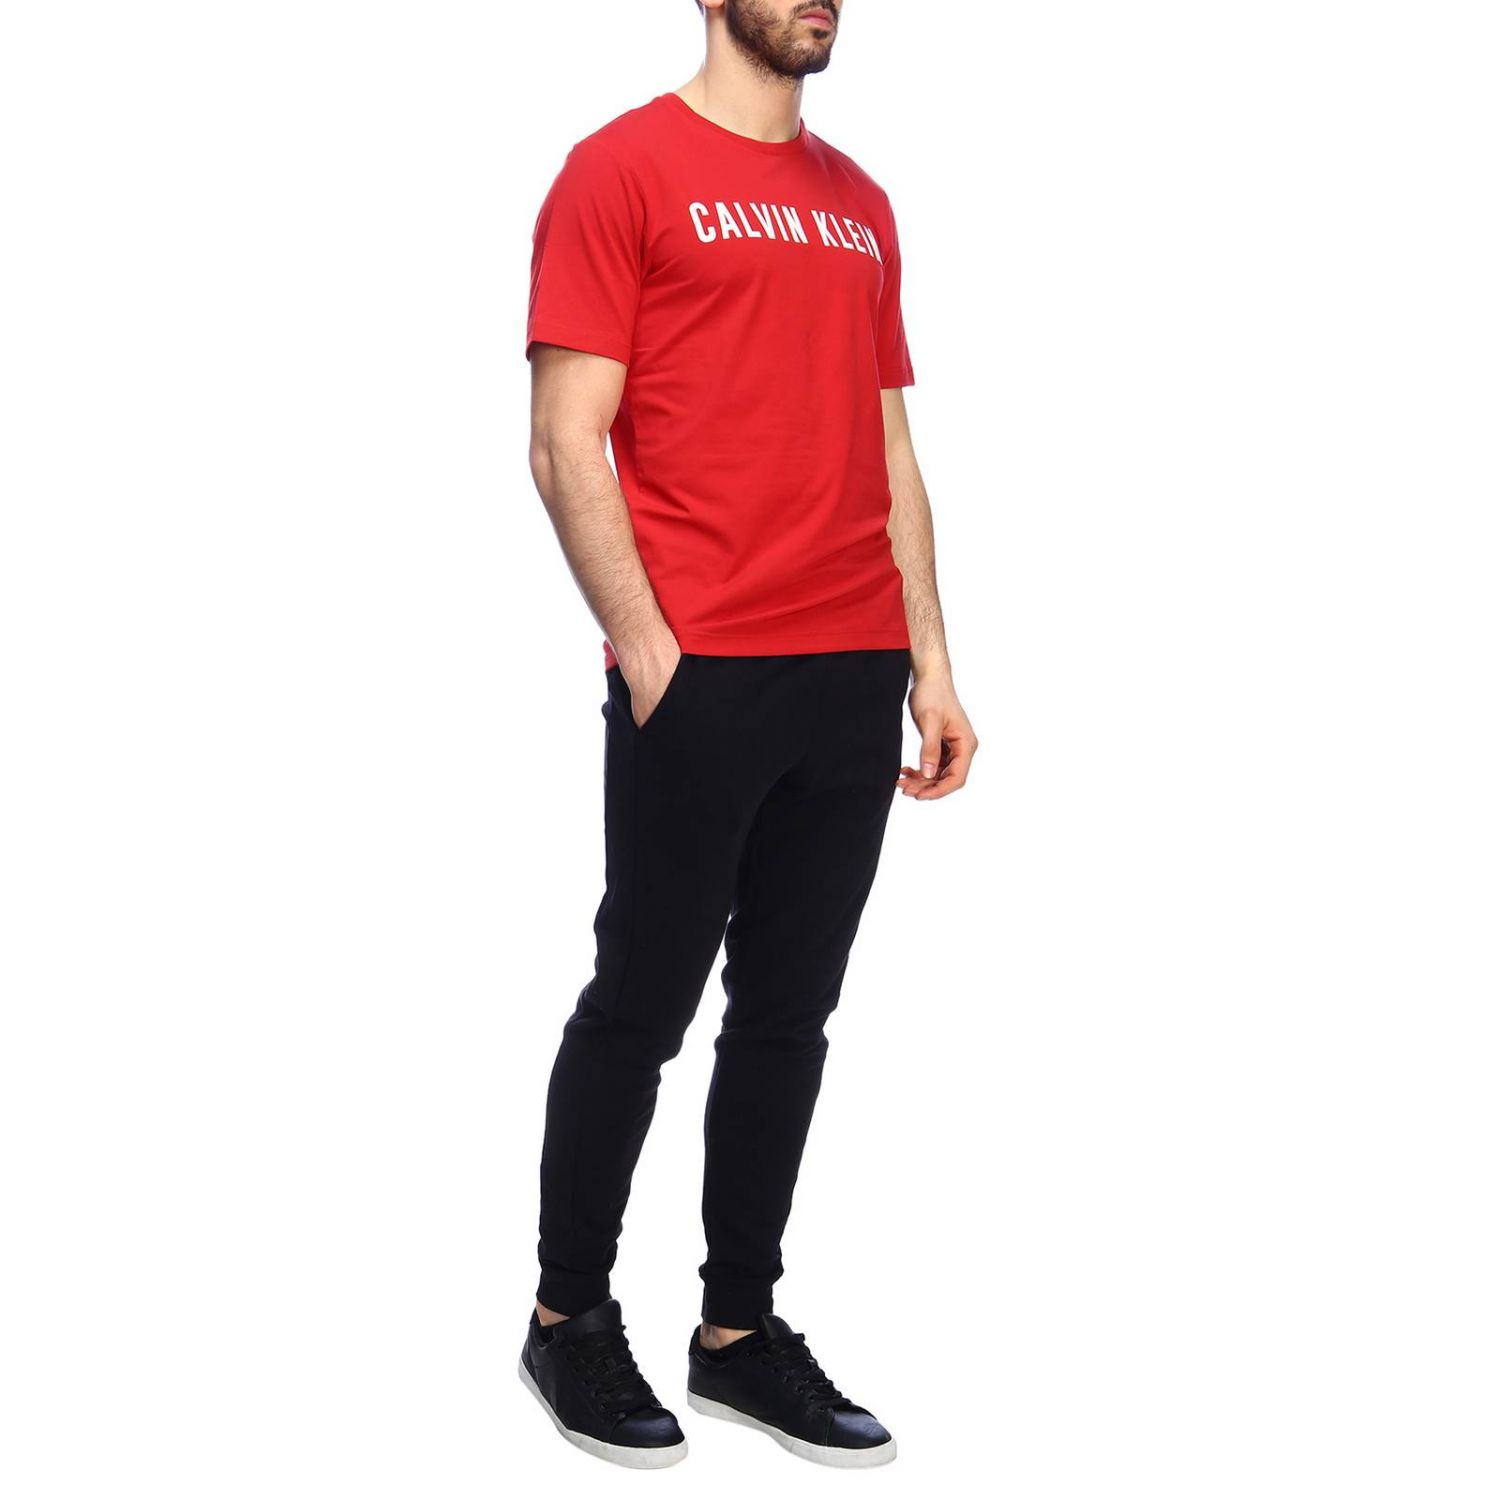 T-shirt men Calvin Klein Performance red 4